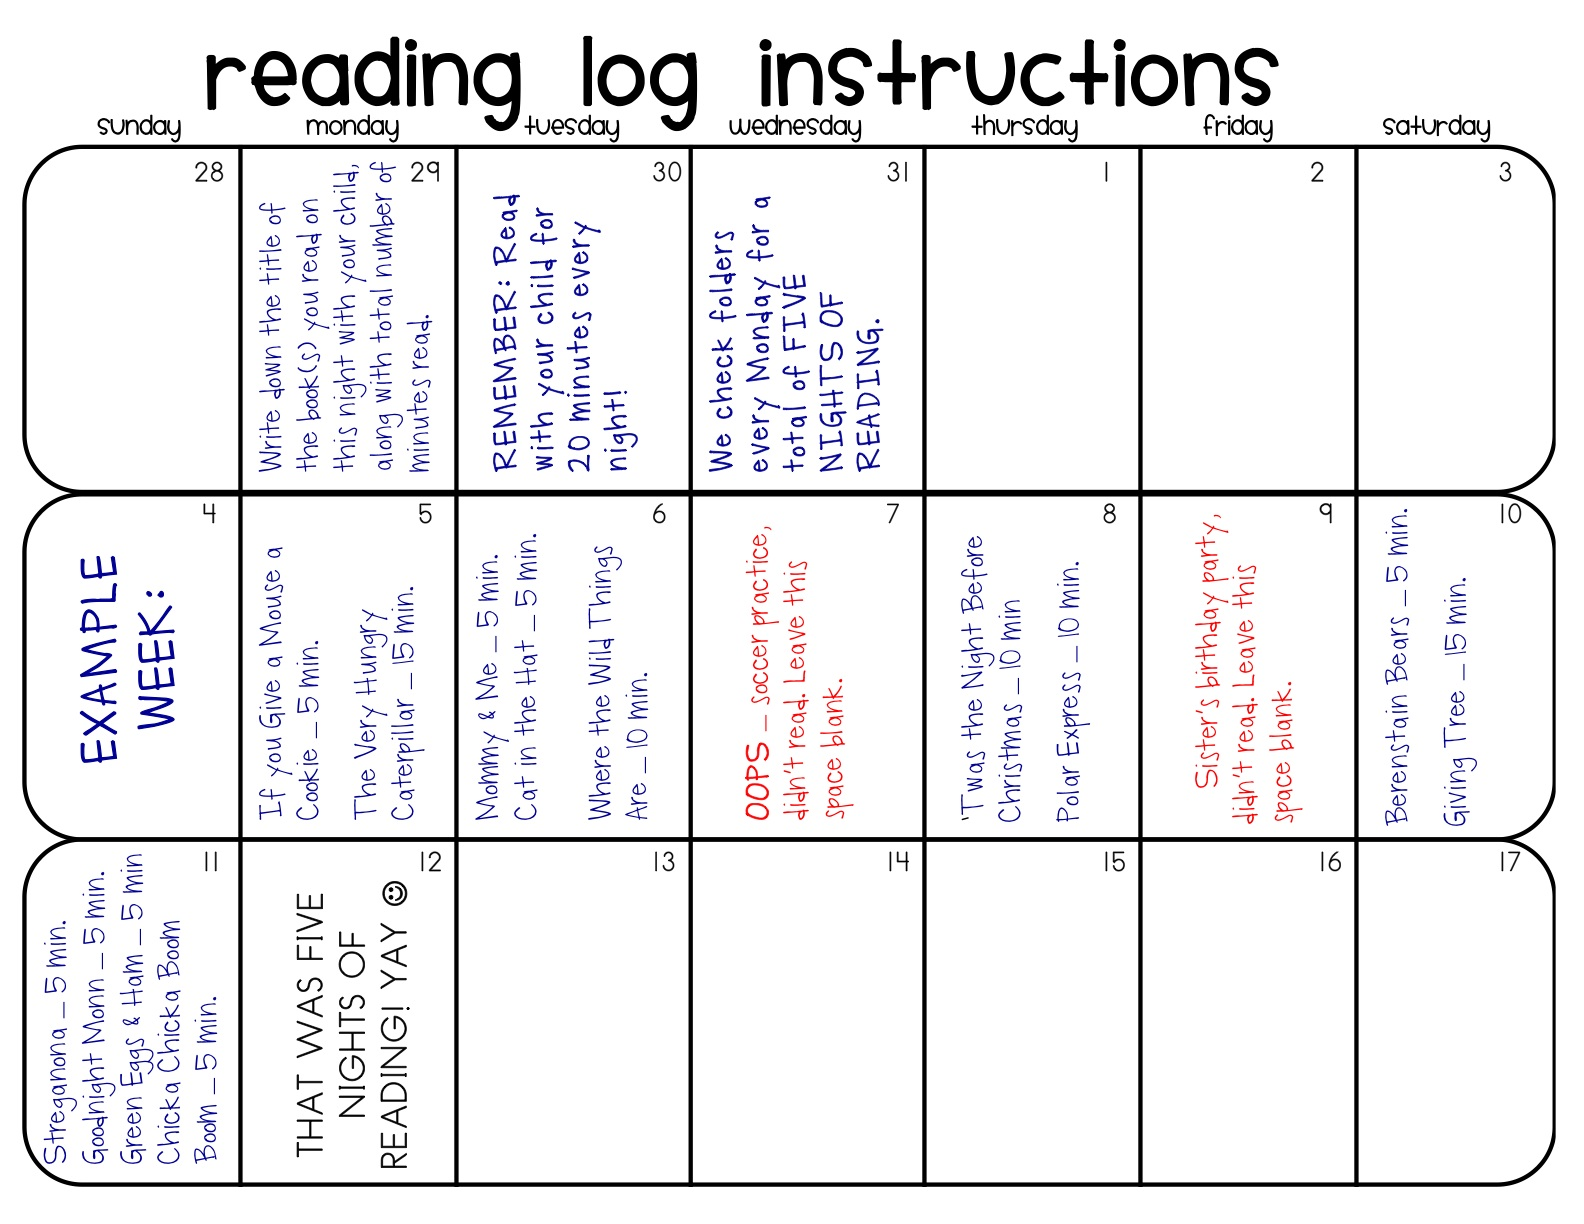 ... reading log instruction sheet incase you have different reading goals